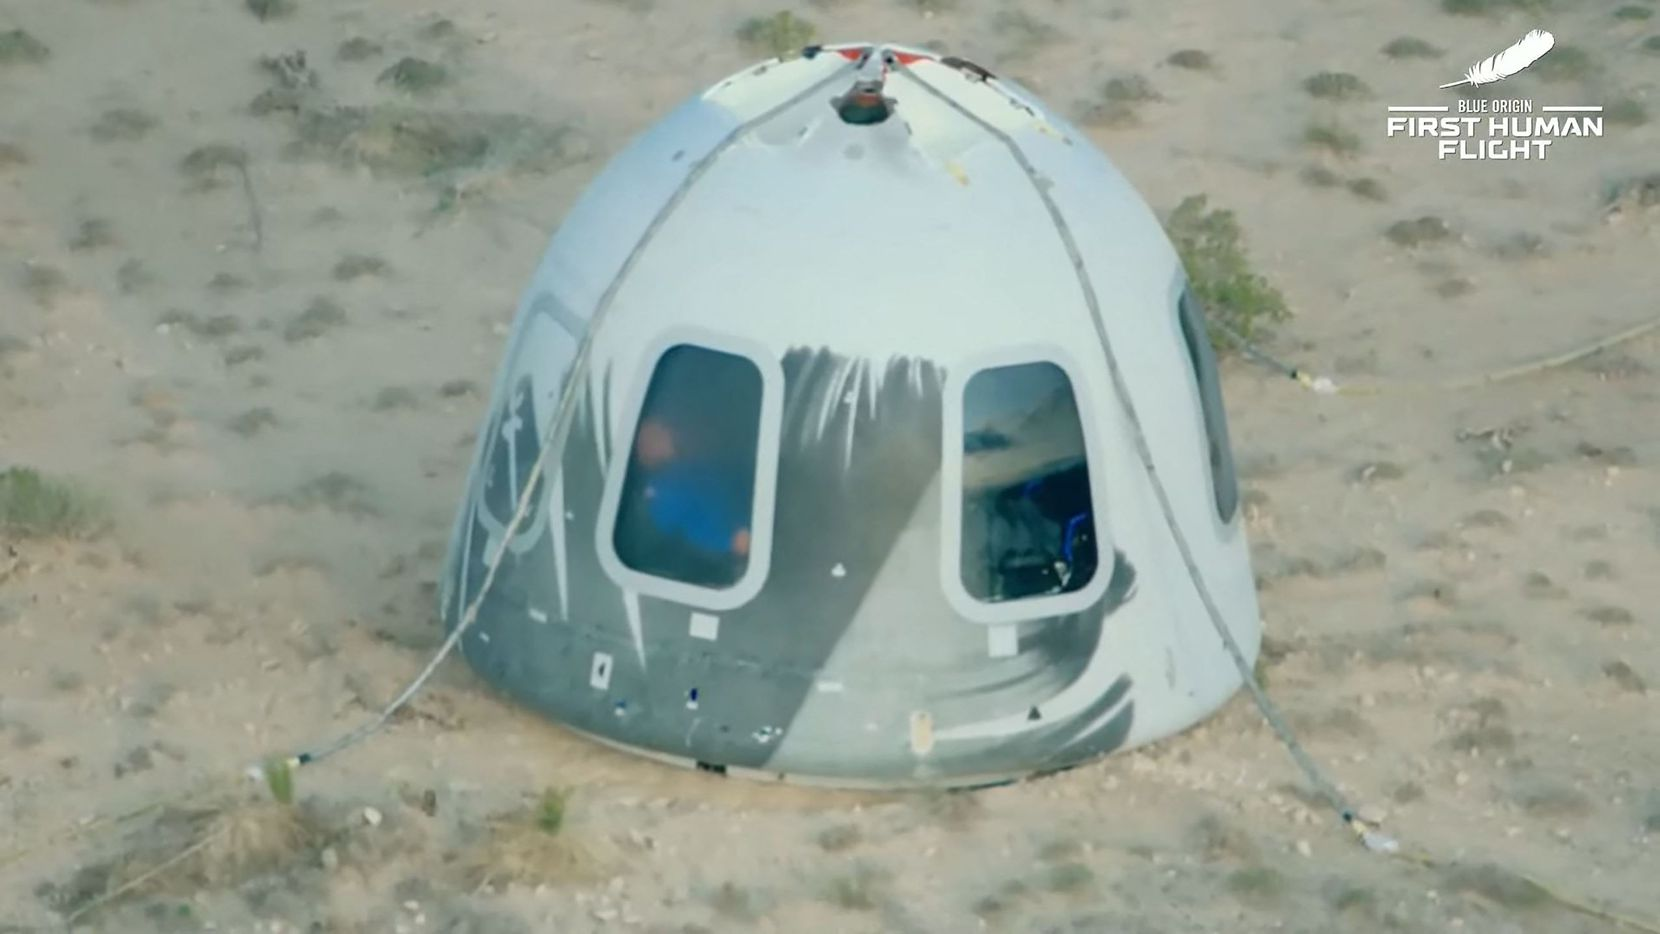 """This still image taken from video by Blue Origin shows Blue Origin's reusable New Shepard craft capsule as it returns from space after it safely landed, on July 20, 2021, in Van Horn, Texas. - Blue Origin's first crewed mission is an 11-minute flight from west Texas to an altitude of 65 miles (106kms), and back again, to coincide with the 52nd anniversary of the first Moon landing. (Photo by Handout / BLUE ORIGIN / AFP) / RESTRICTED TO EDITORIAL USE - MANDATORY CREDIT """"AFP PHOTO / Blue Origin"""" - NO MARKETING - NO ADVERTISING CAMPAIGNS - DISTRIBUTED AS A SERVICE TO CLIENTS (Photo by HANDOUT/BLUE ORIGIN/AFP via Getty Images)"""